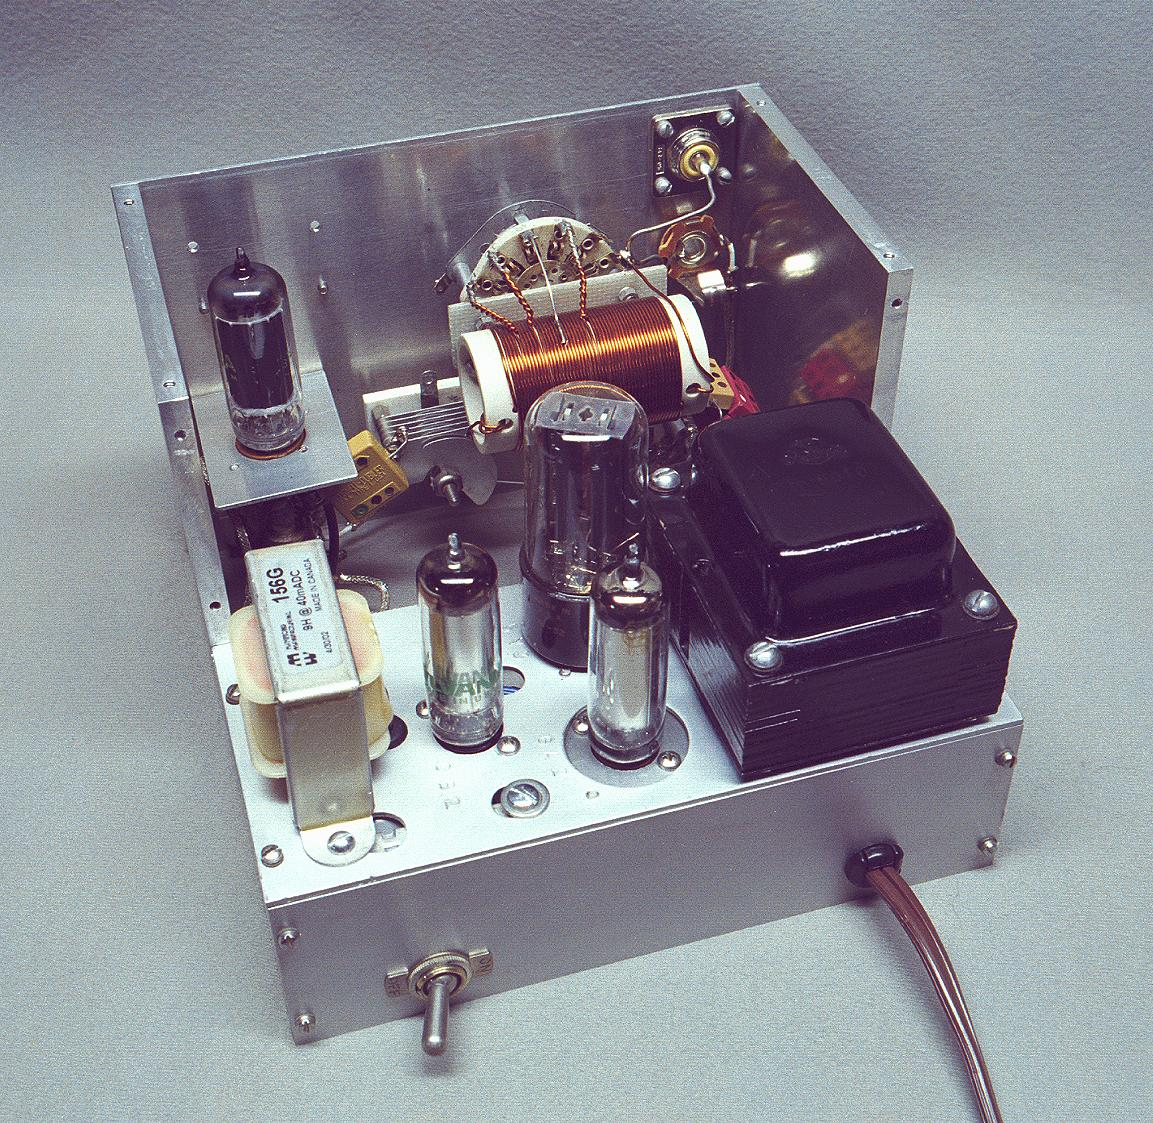 Design and construction of a homebrew single sideband amateur radio transmitter